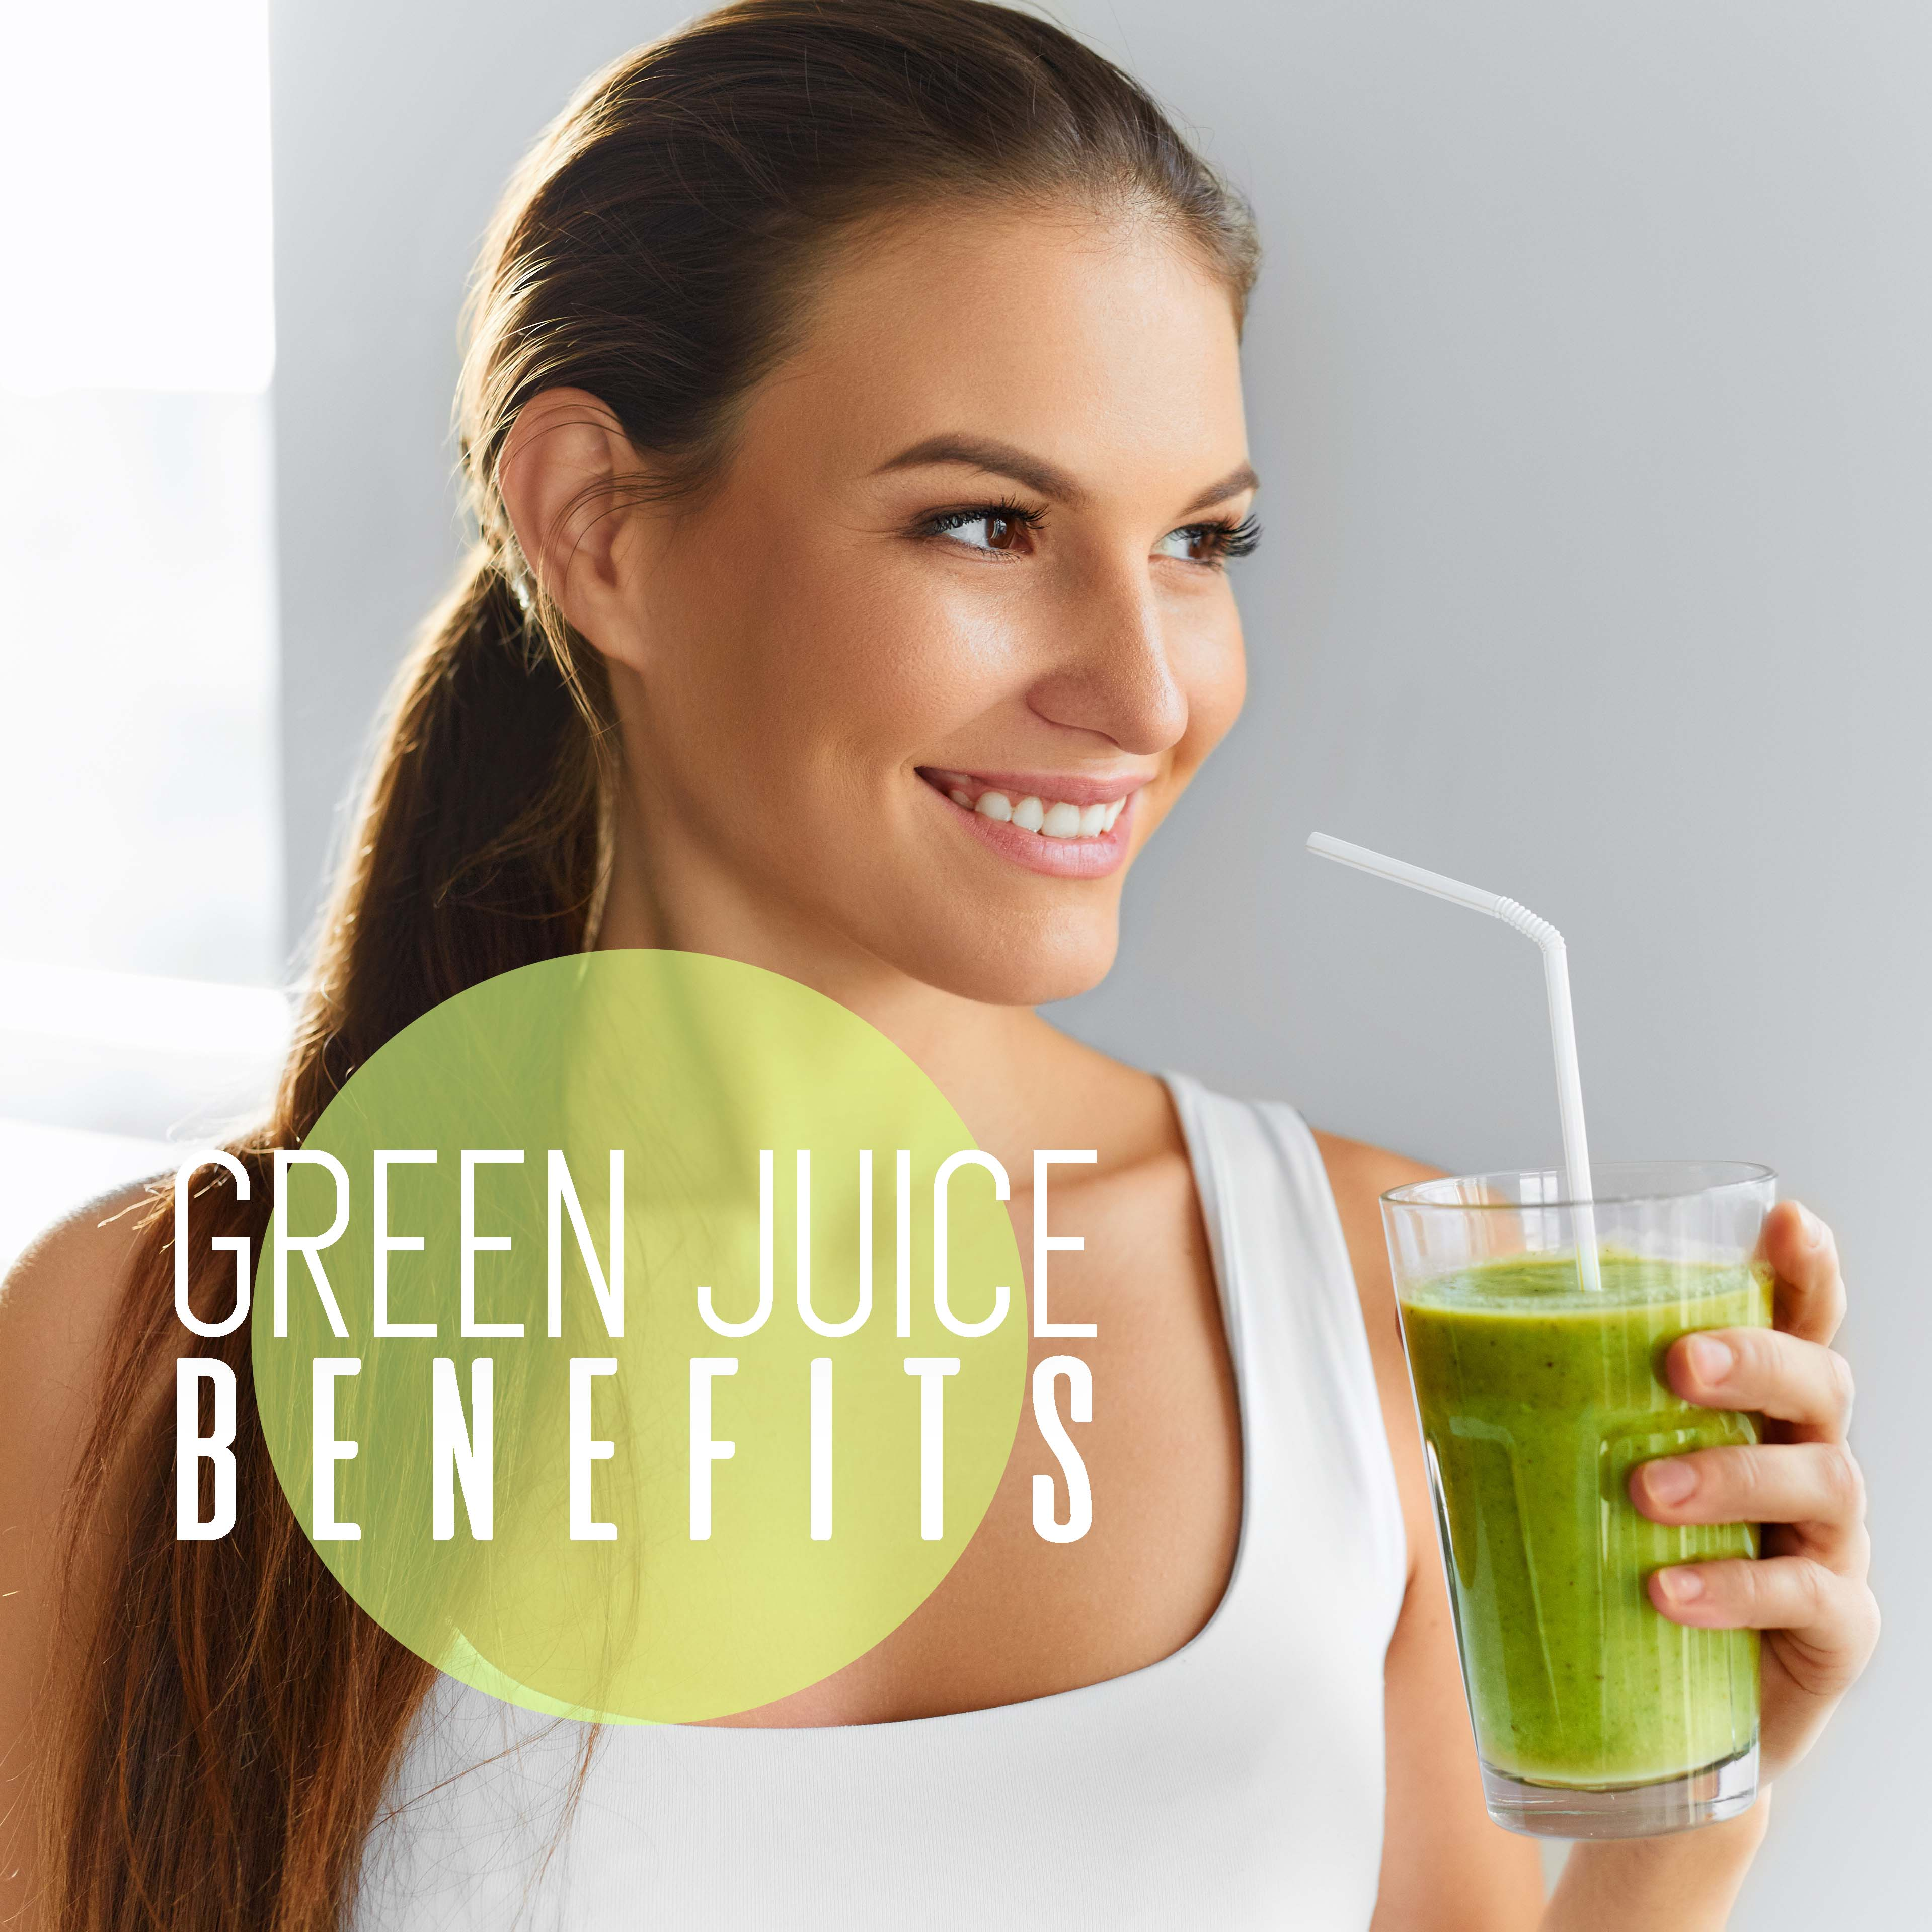 The Benefits of Green Juice